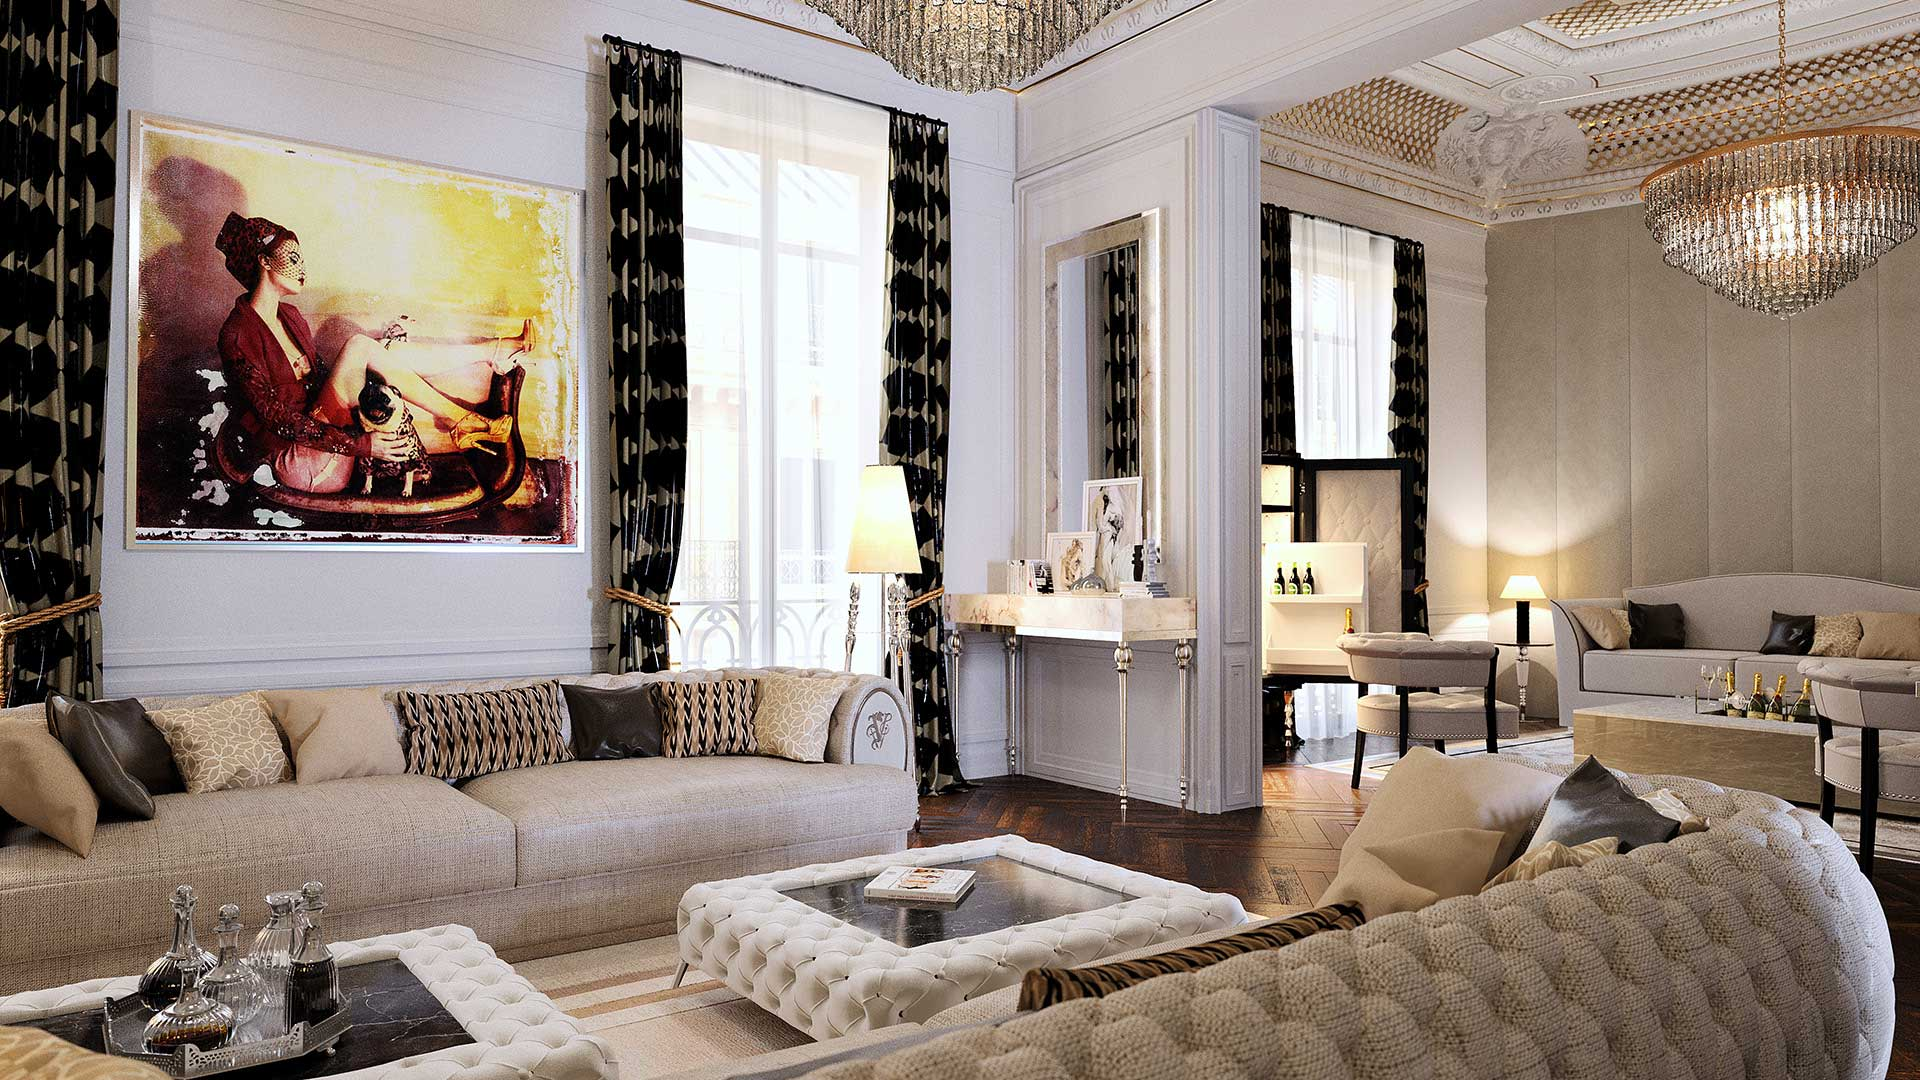 agence 3 lyon studio cr ation 3d salon de luxe haussmann. Black Bedroom Furniture Sets. Home Design Ideas